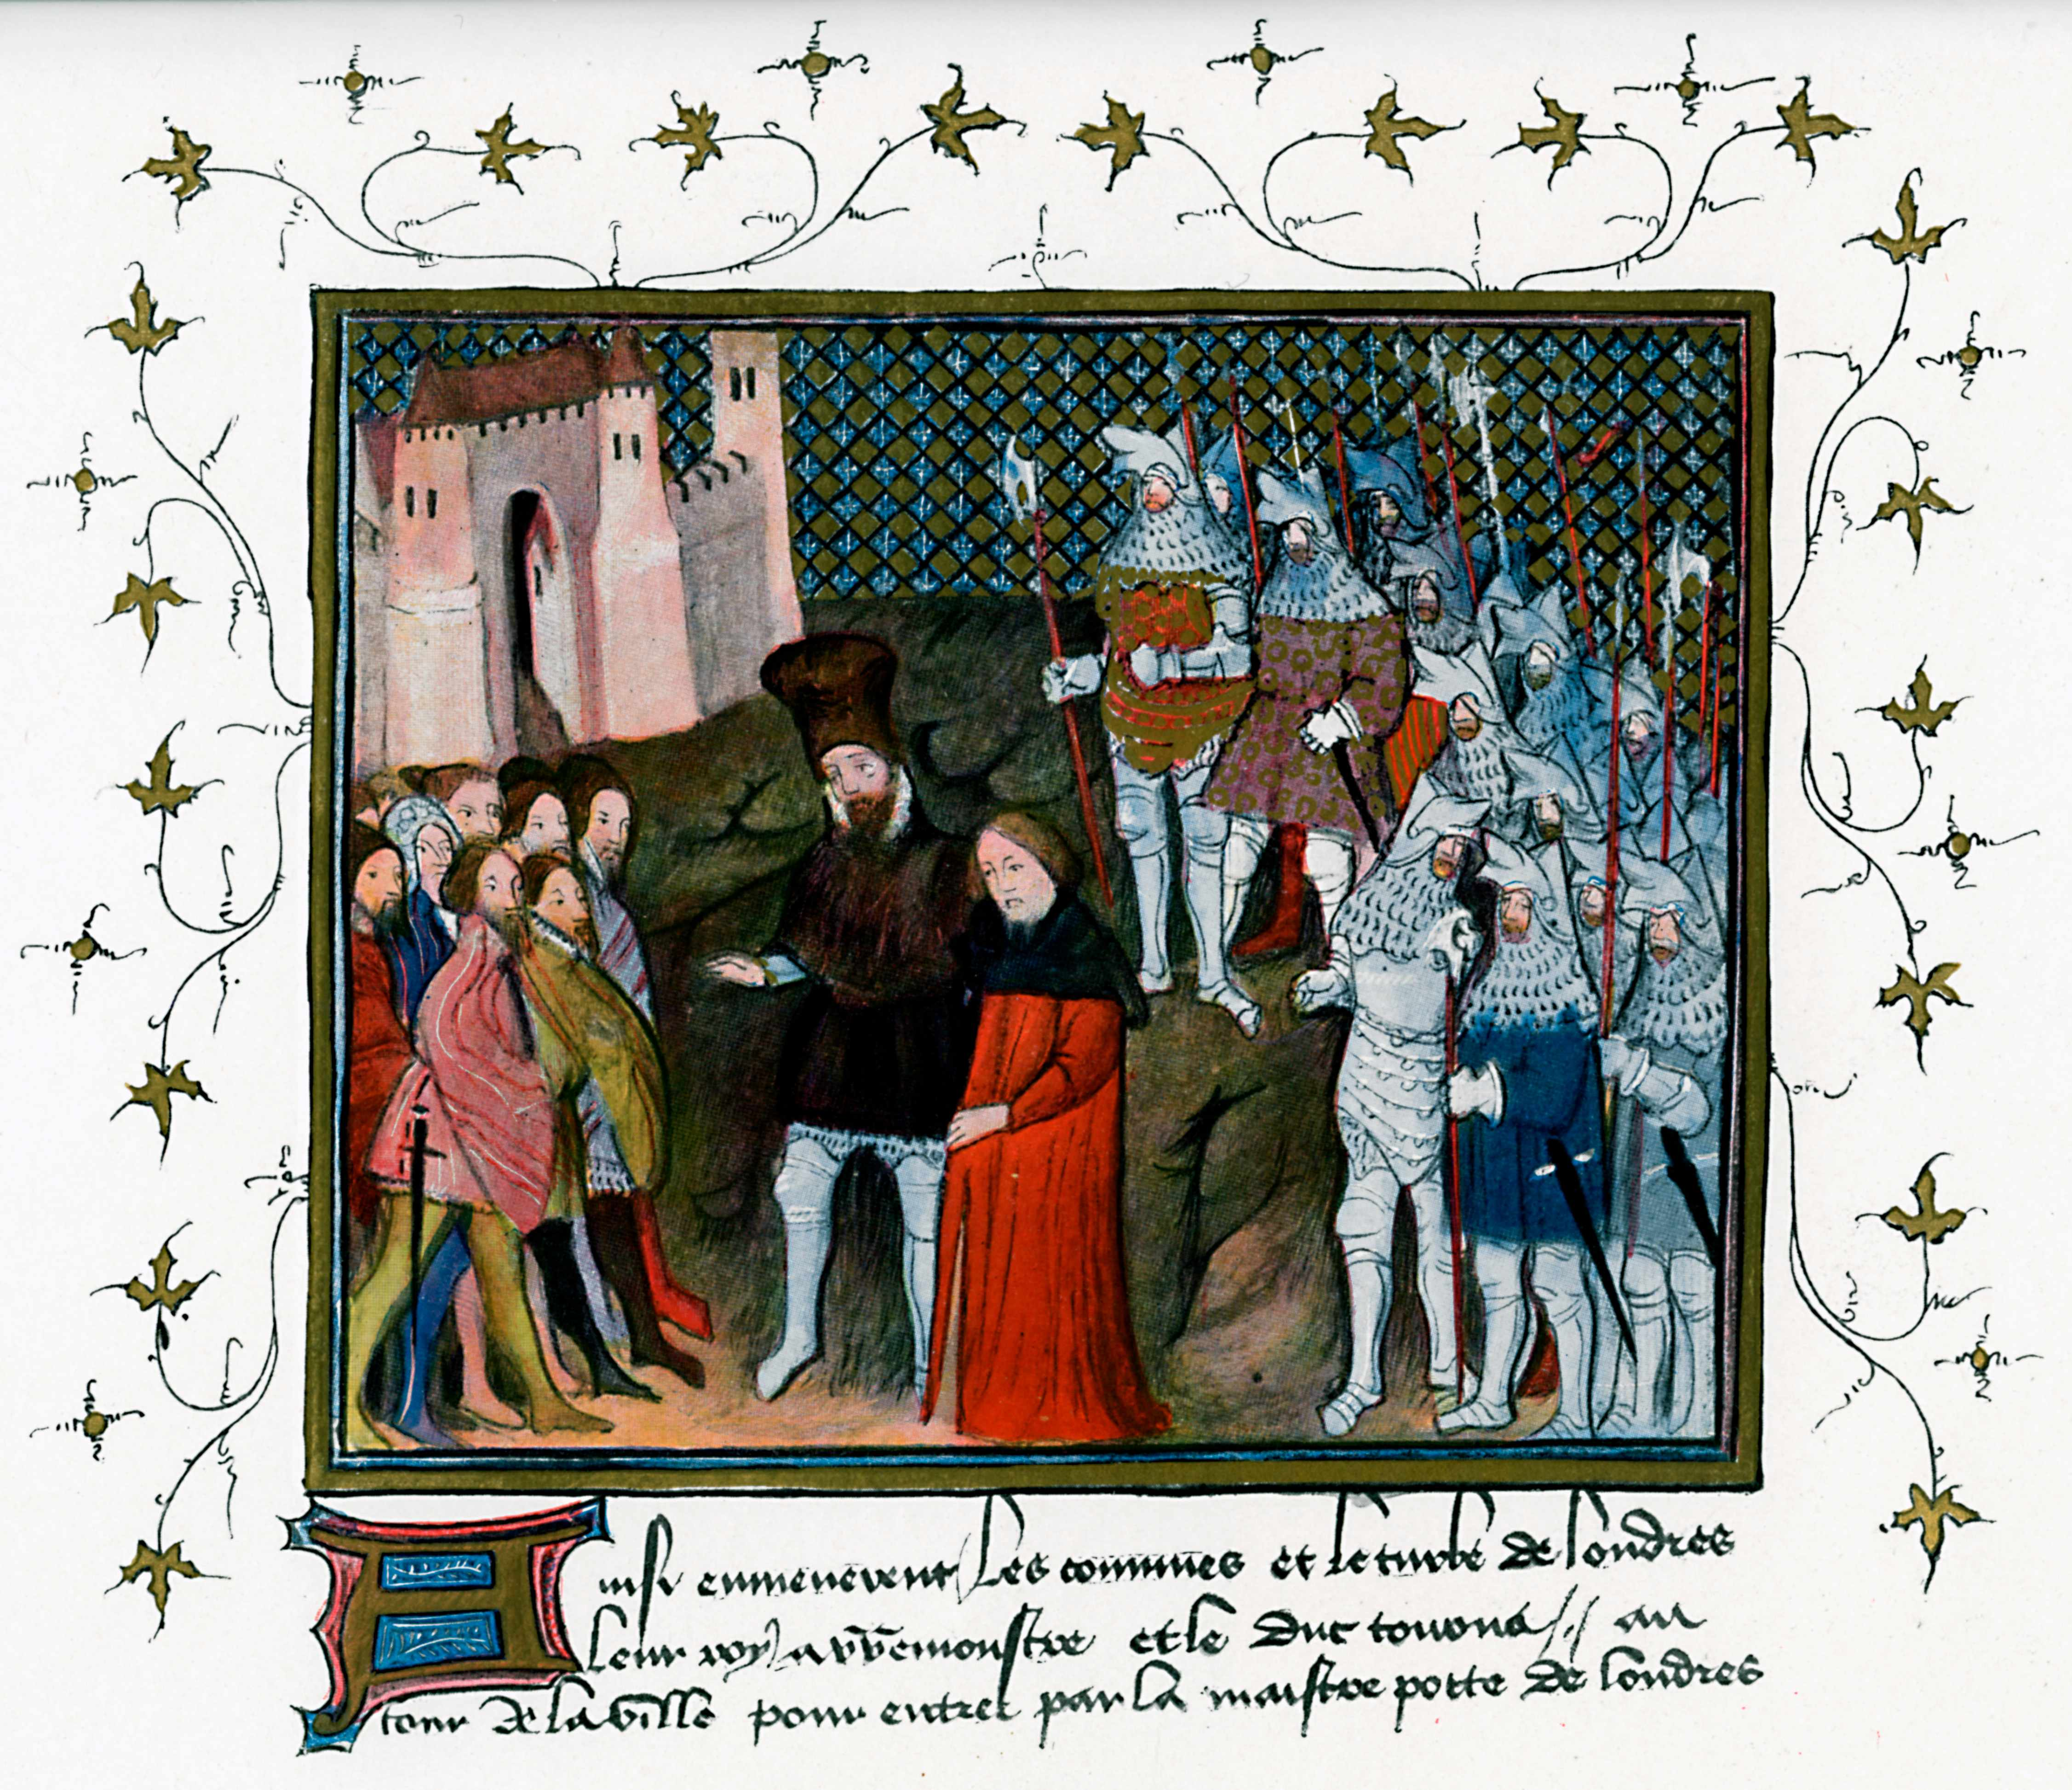 Richard II, led captive by Henry Bolingbroke (later Henry IV), renounces the throne in Jean Creton's 'Histoire du Roy d'Angleterre Richard II' (1401-05). (Photo by The Print Collector/Print Collector/Getty Images)